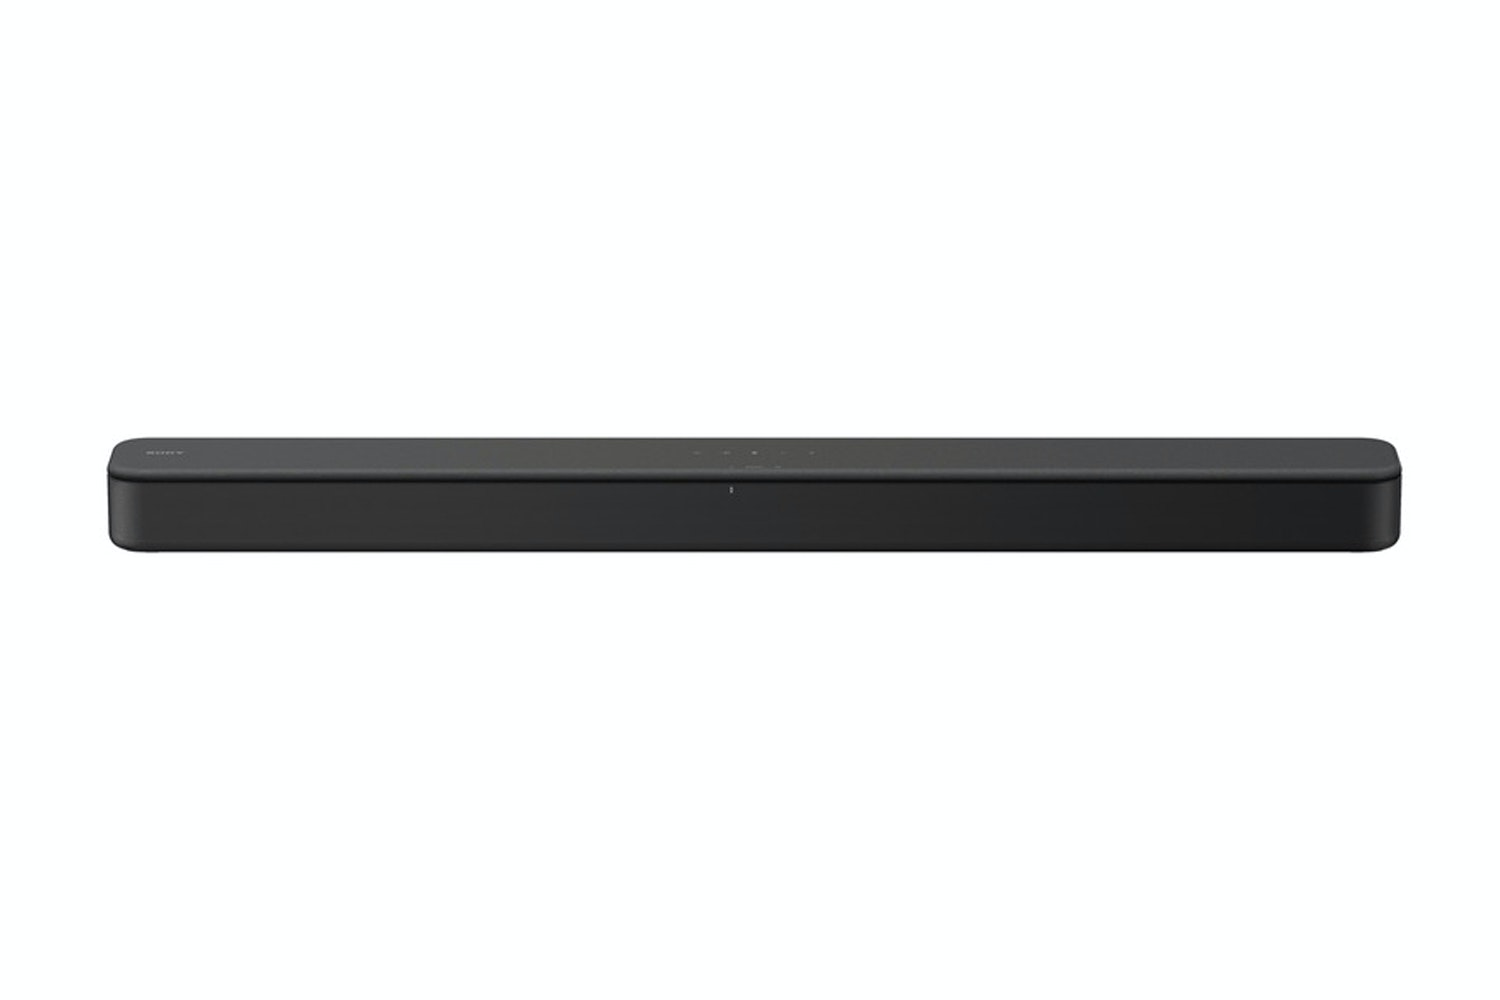 Sony HT-SF150 2ch Single Soundbar